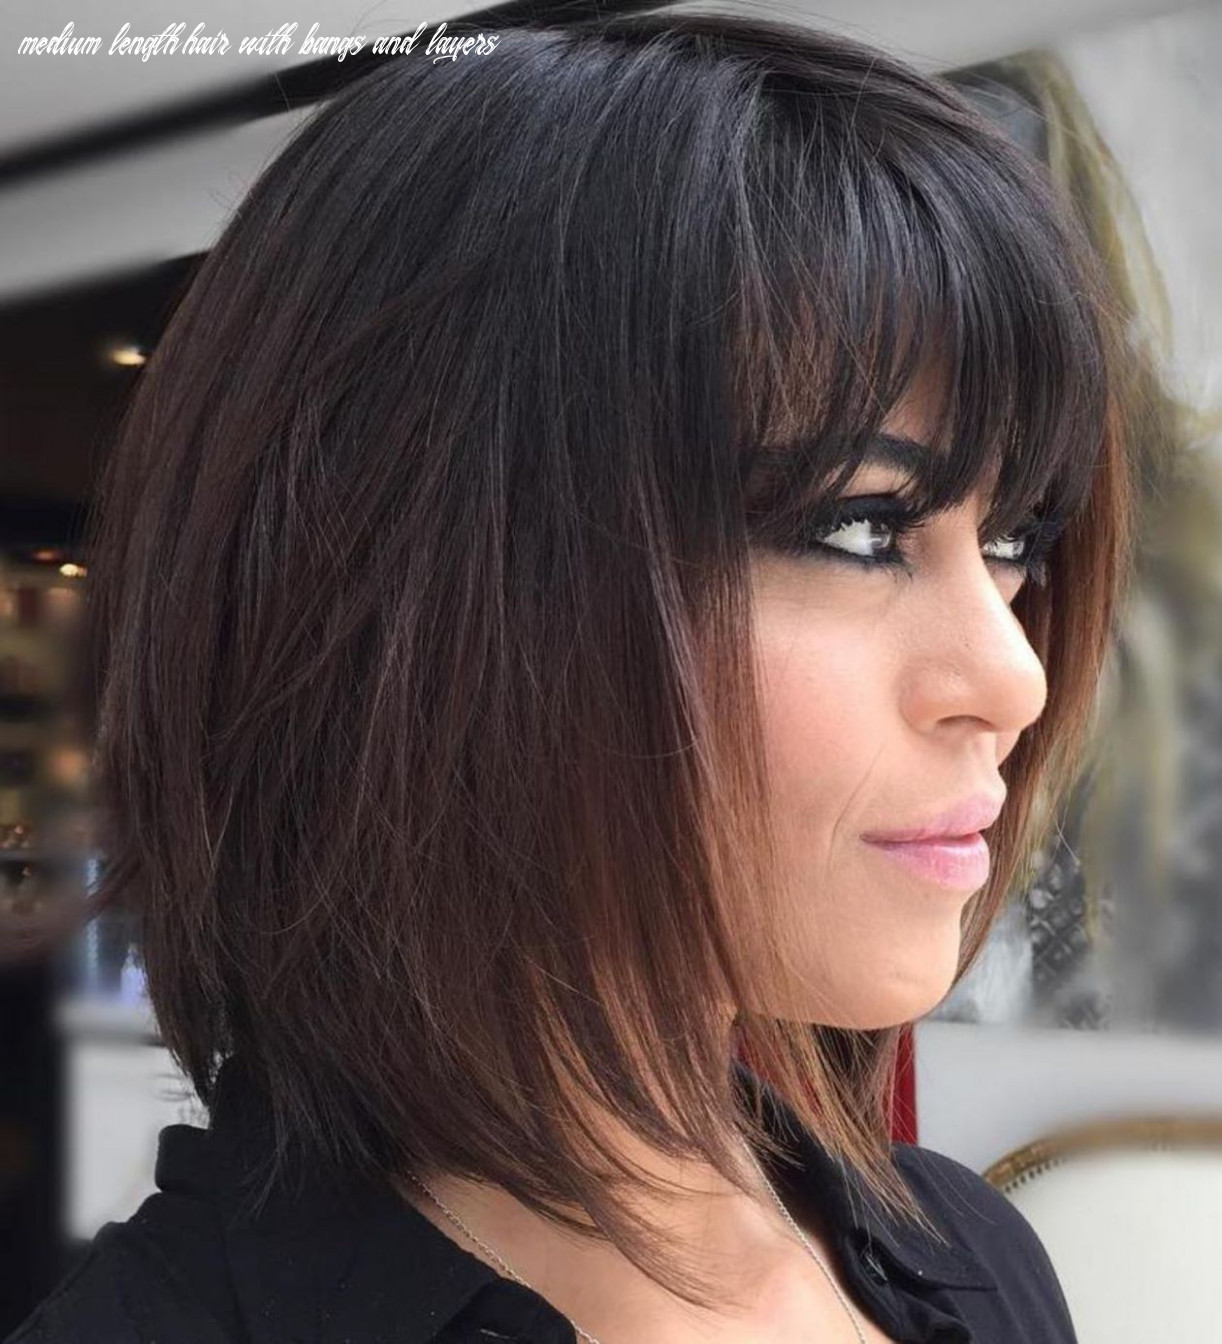 Pin on hair cut style medium length hair with bangs and layers